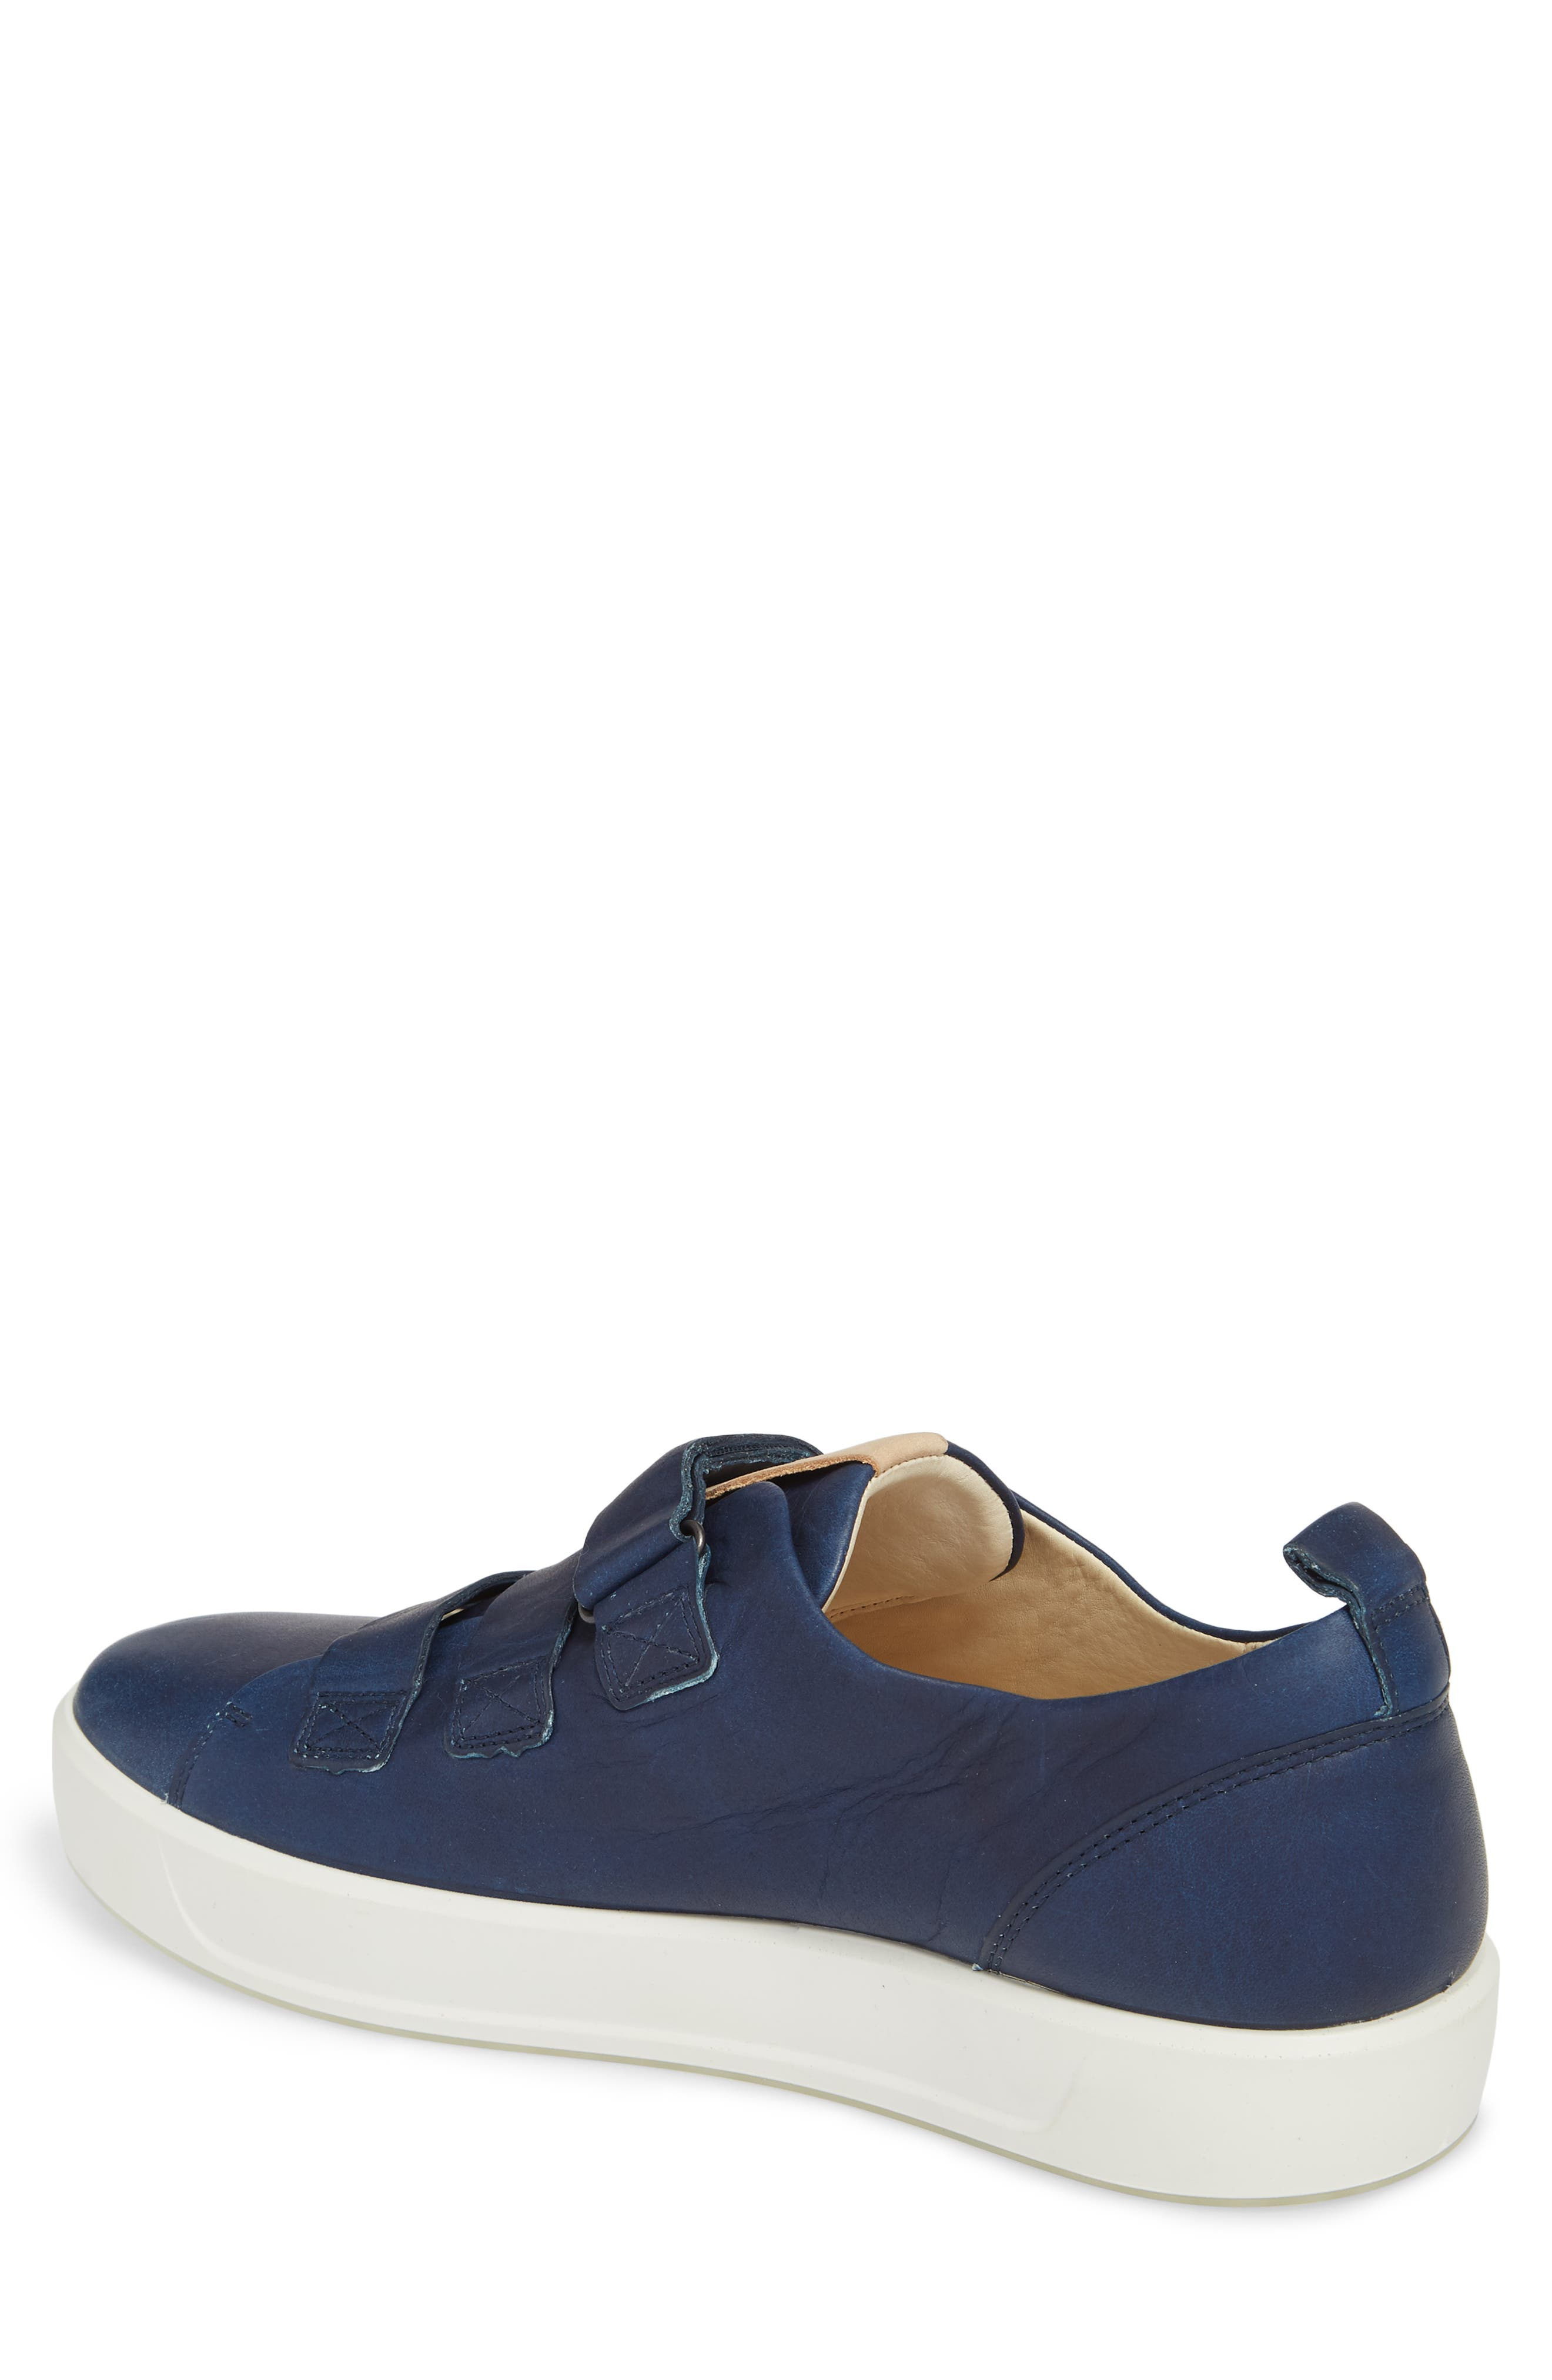 Soft 8 Strap Sneaker,                             Alternate thumbnail 2, color,                             Indigo 7 Leather